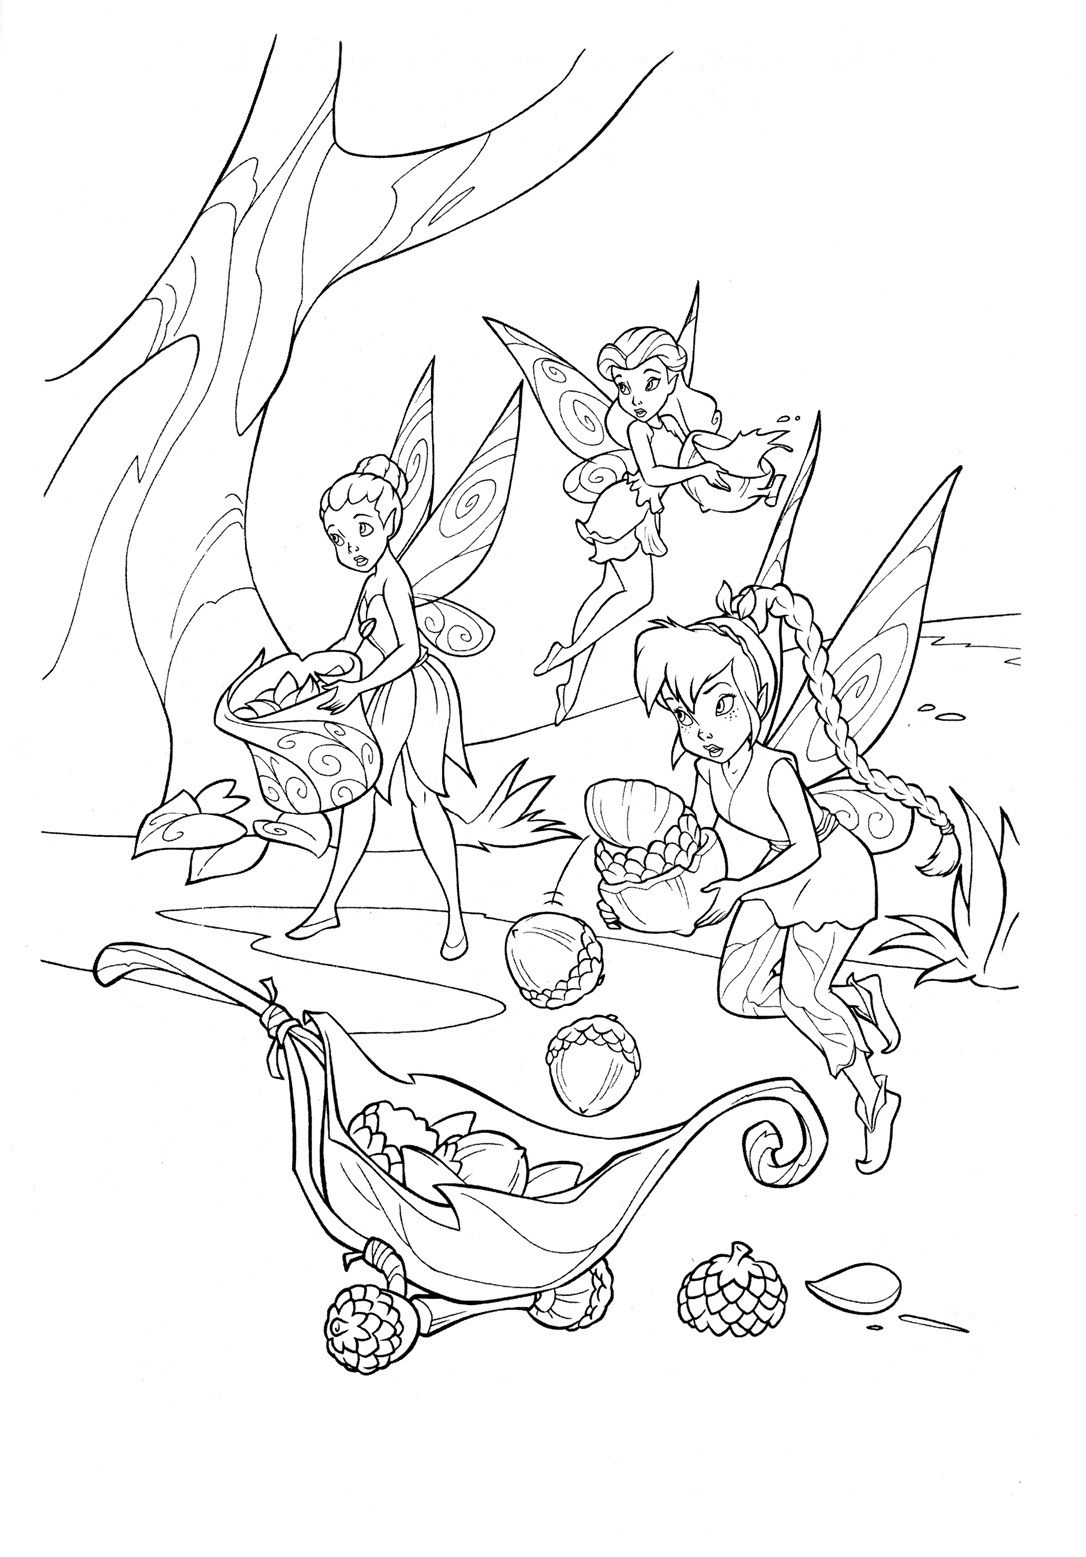 Disney Fairies Coloring Pages For Kids Jpg 1086 1557 Fairy Coloring Fairy Coloring Pages Tinkerbell Coloring Pages [ 1557 x 1086 Pixel ]